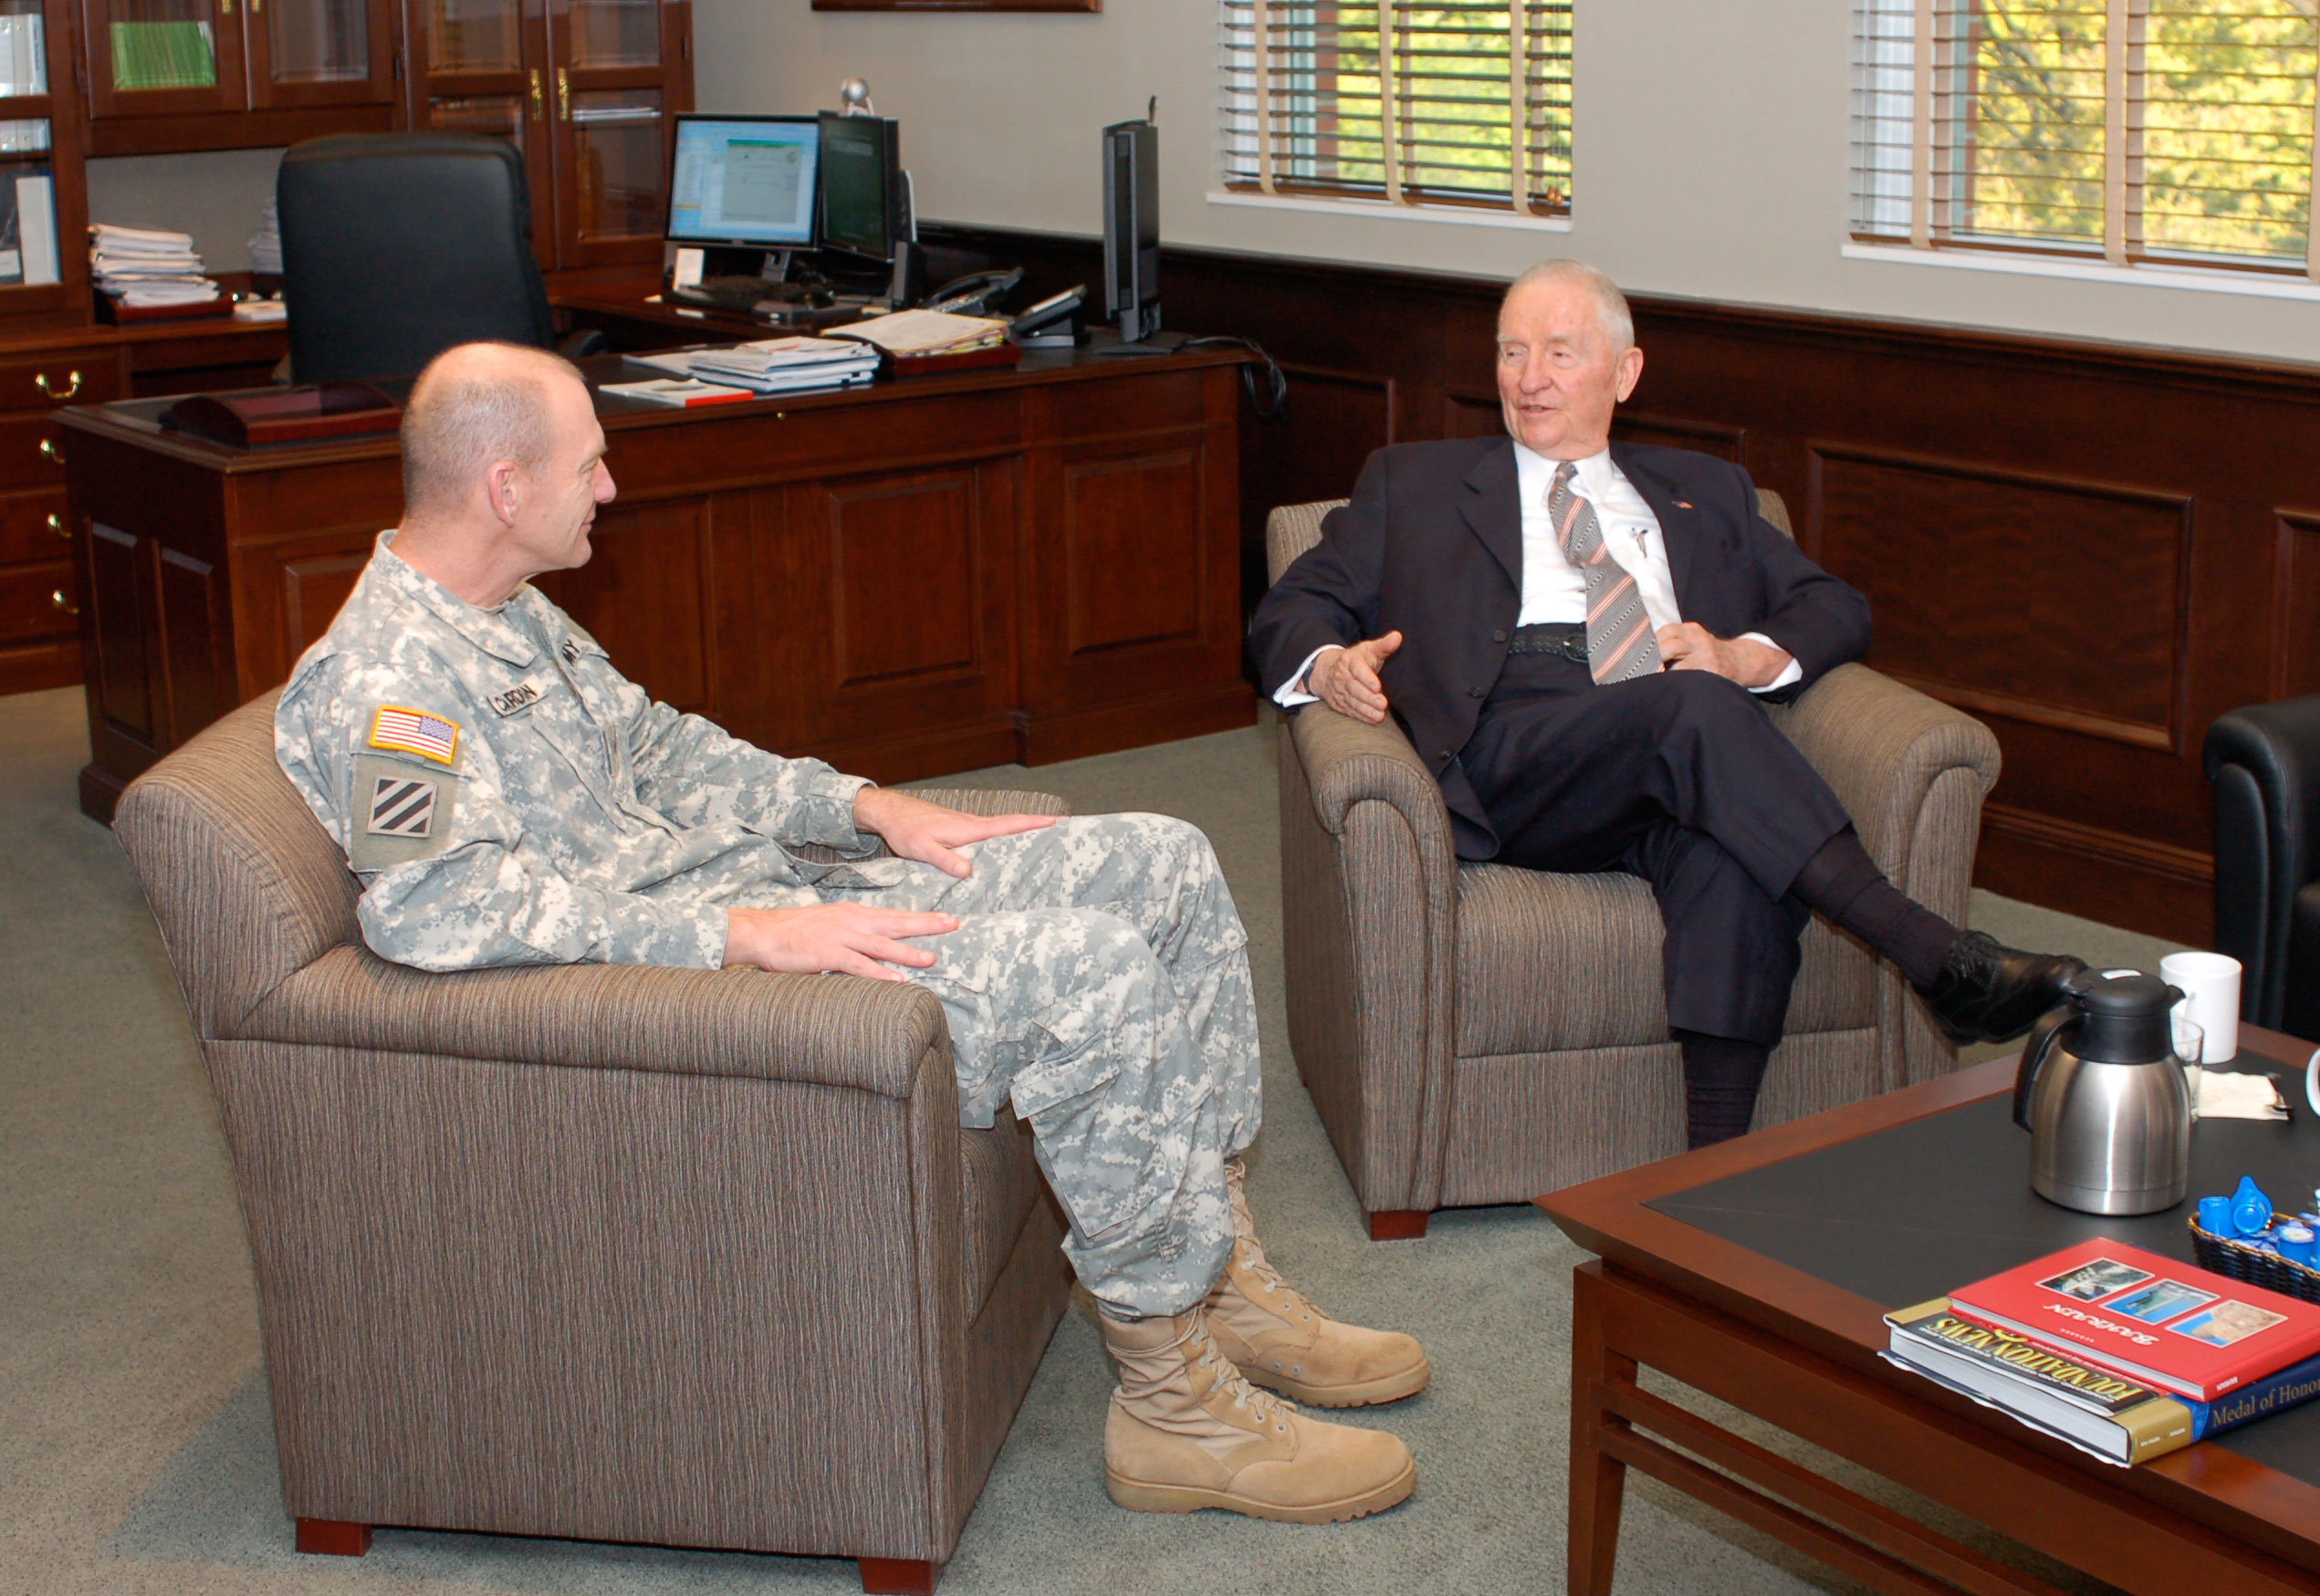 Ross Perot, right, converses with Brig. Gen. Edward Cardon, deputy commandant of the U.S. Army Command and General Staff College, during a visit to the college, Oct. 20. The CGSC Foundation sponsored the visit after which Perot elected to contribute $6.1 million to two new programs the foundation is establishing in support of CGSC.